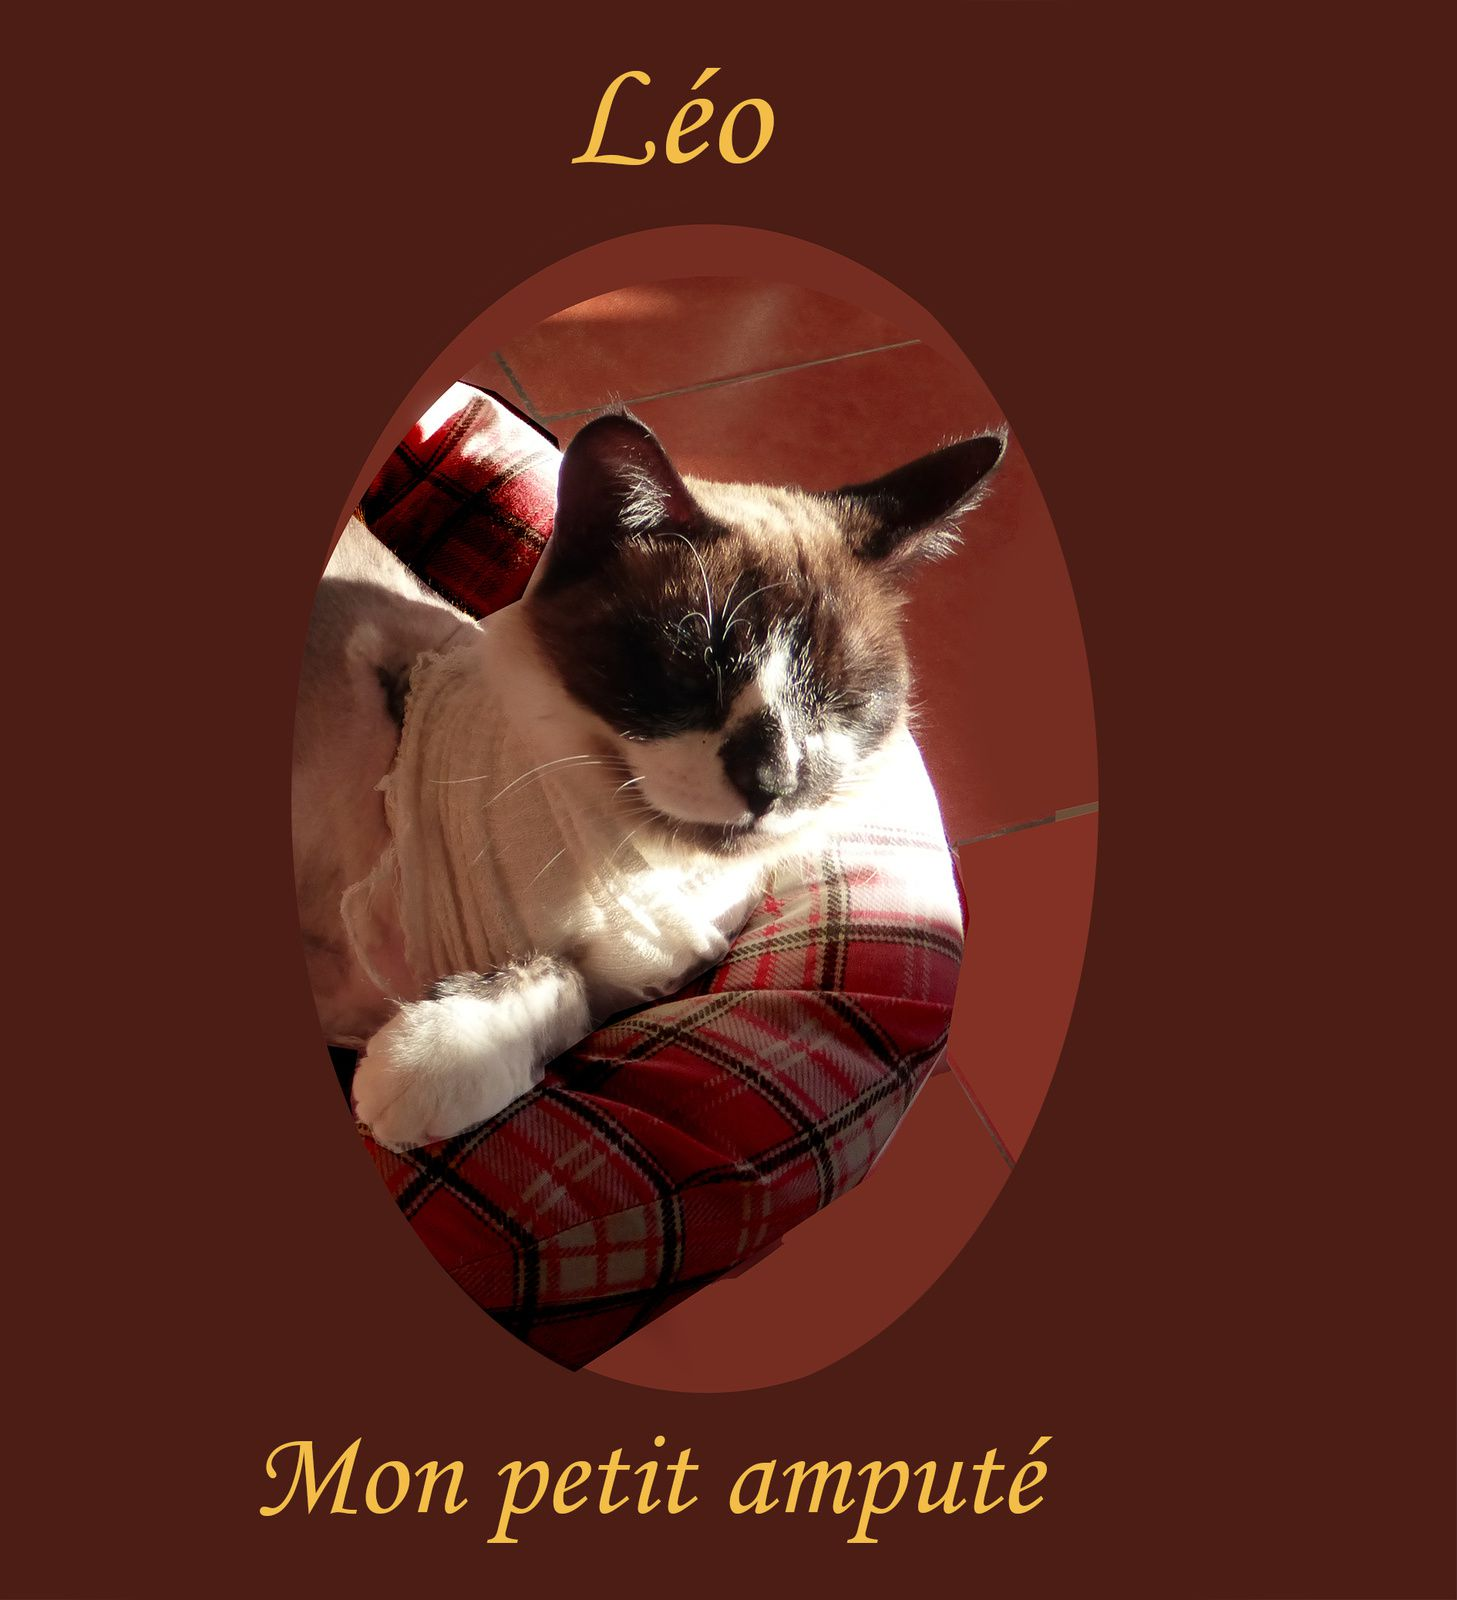 Léo, mon chat, m'interroge